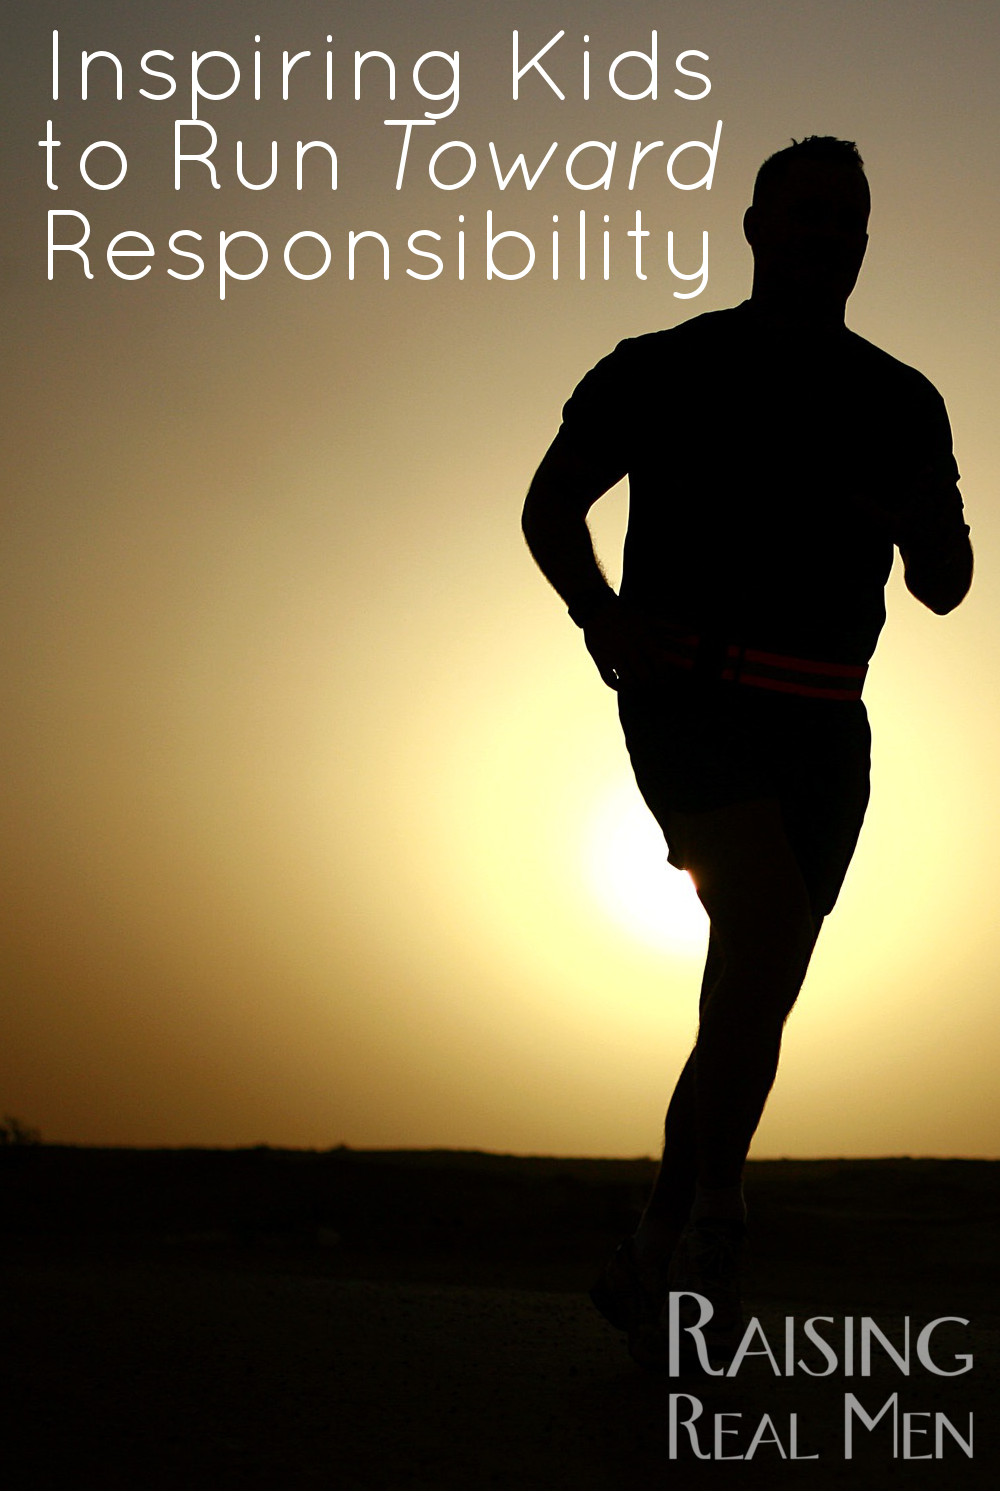 rrm-inspiring-kids-to-run-toward-responsibility